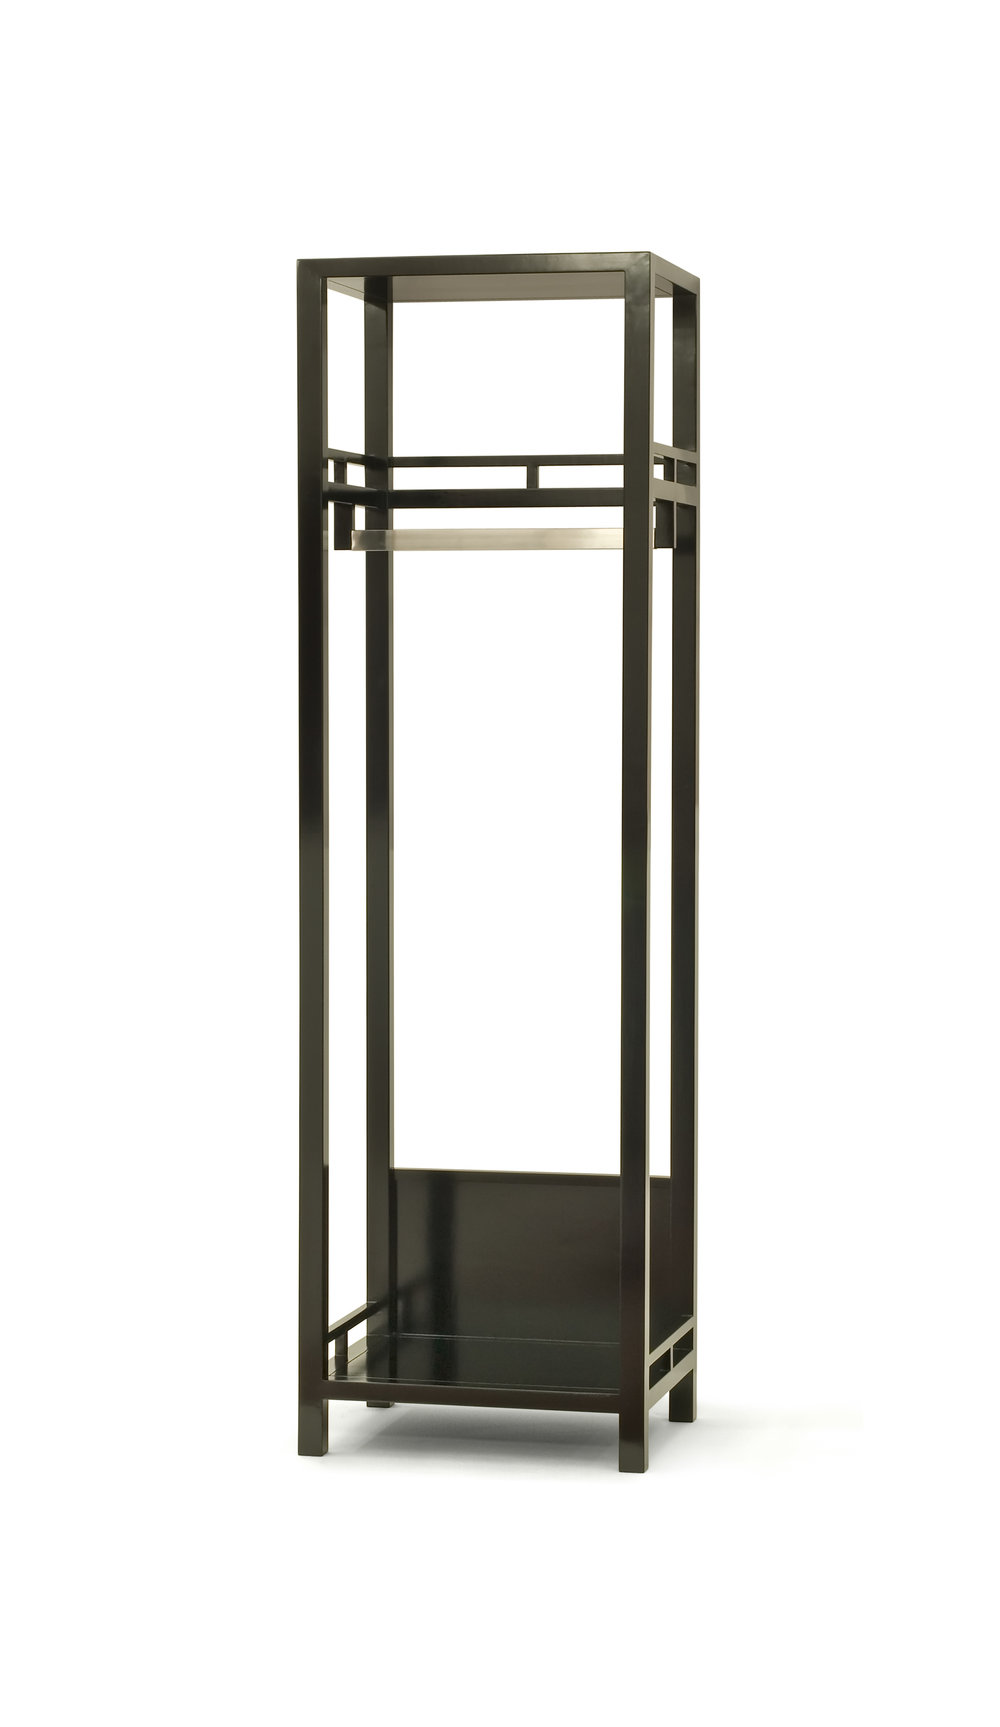 ....modern chinese furniture : clothes stand ..摩登中式家具 : 挂衣架....